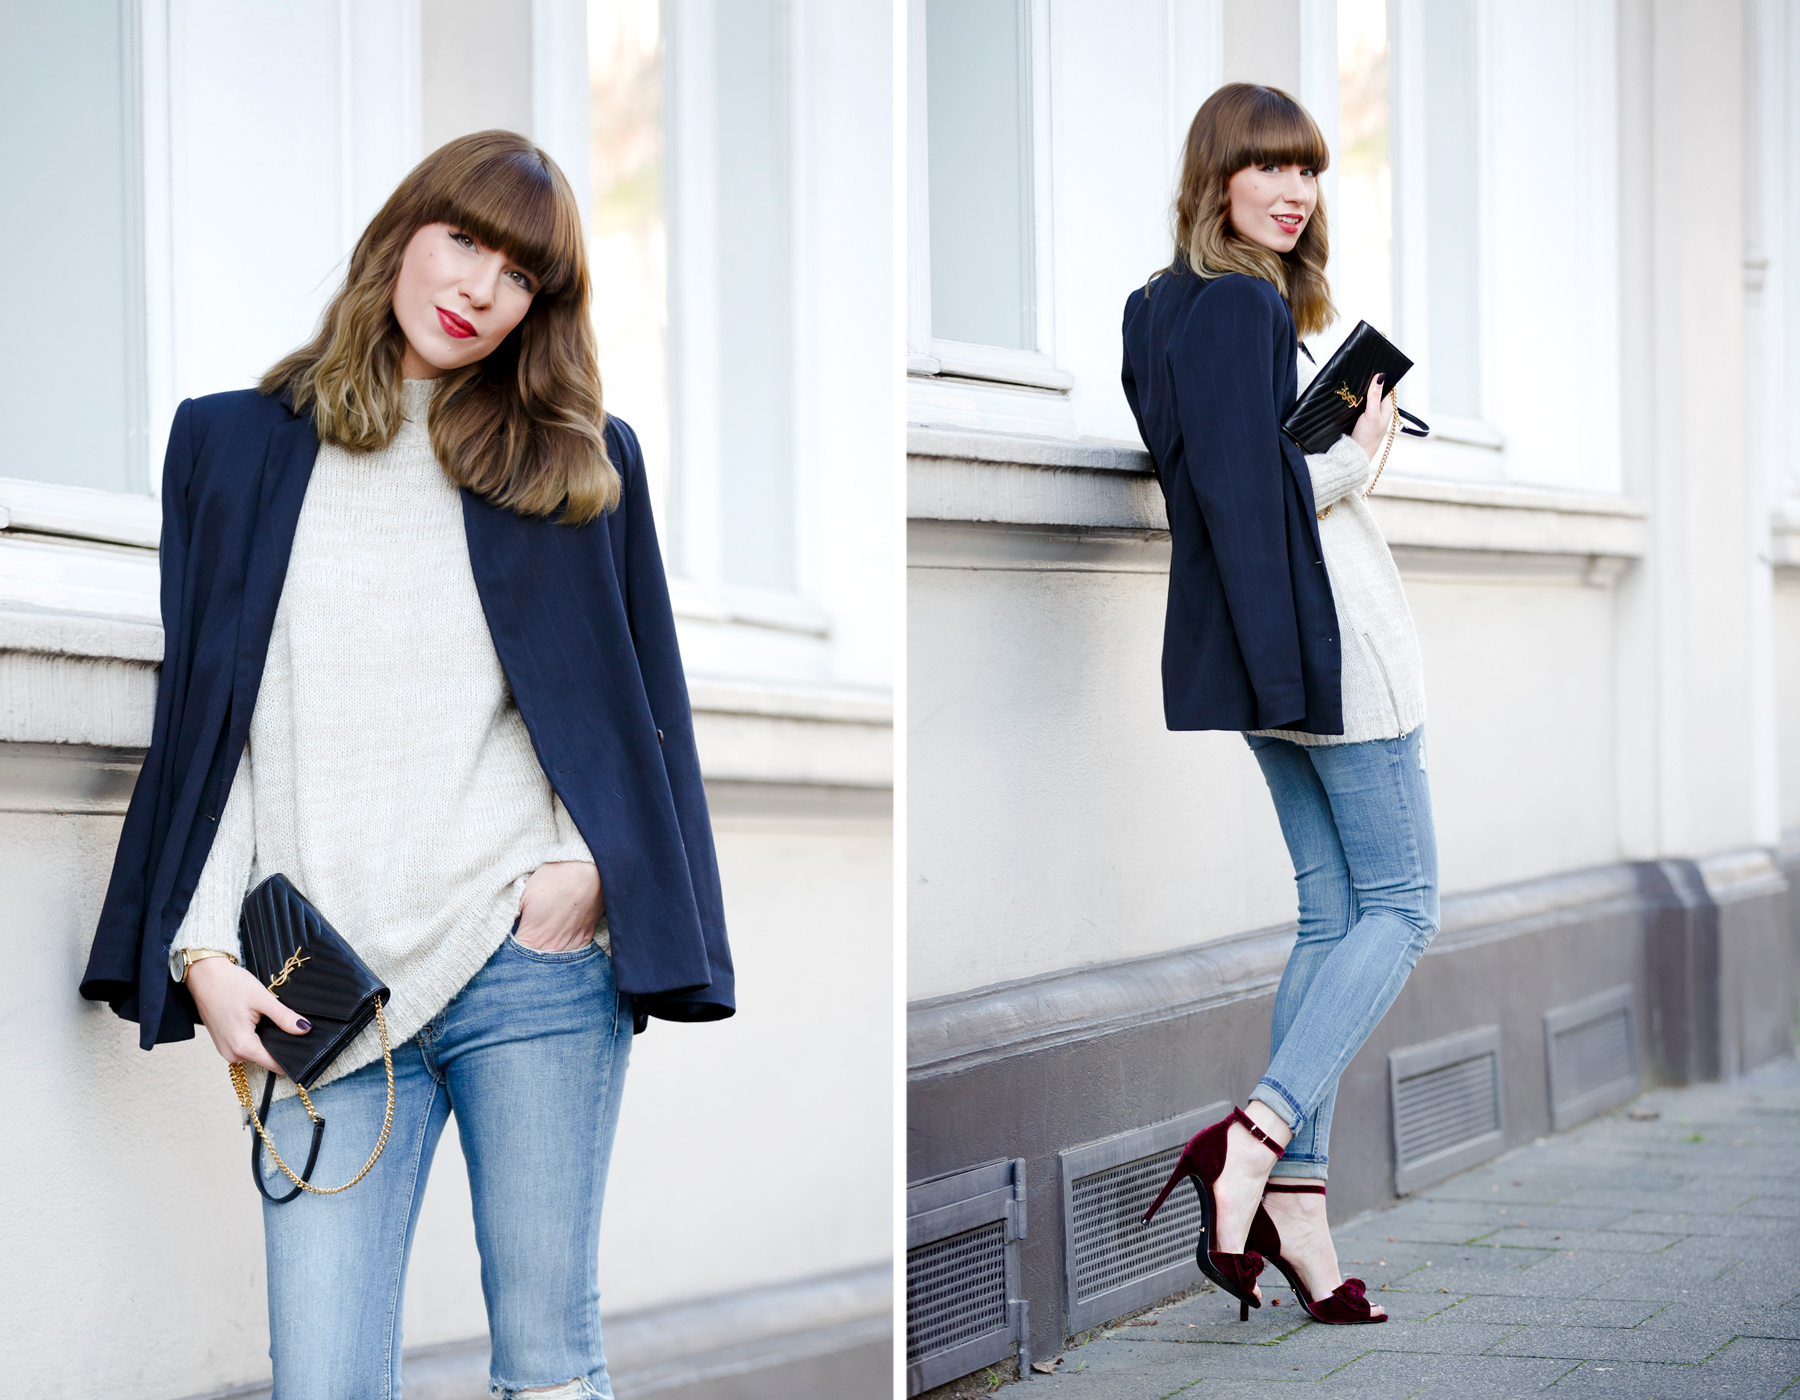 outfit office christmas party casual and velvet red ruby high heels topshop love cute blazer ysl saint laurent paris monogram bag rosefield watch ricarda schernus cats & dogs fashionblogger ootd outfitblogger blue jeans styleblogger dusseldorf nrw  1